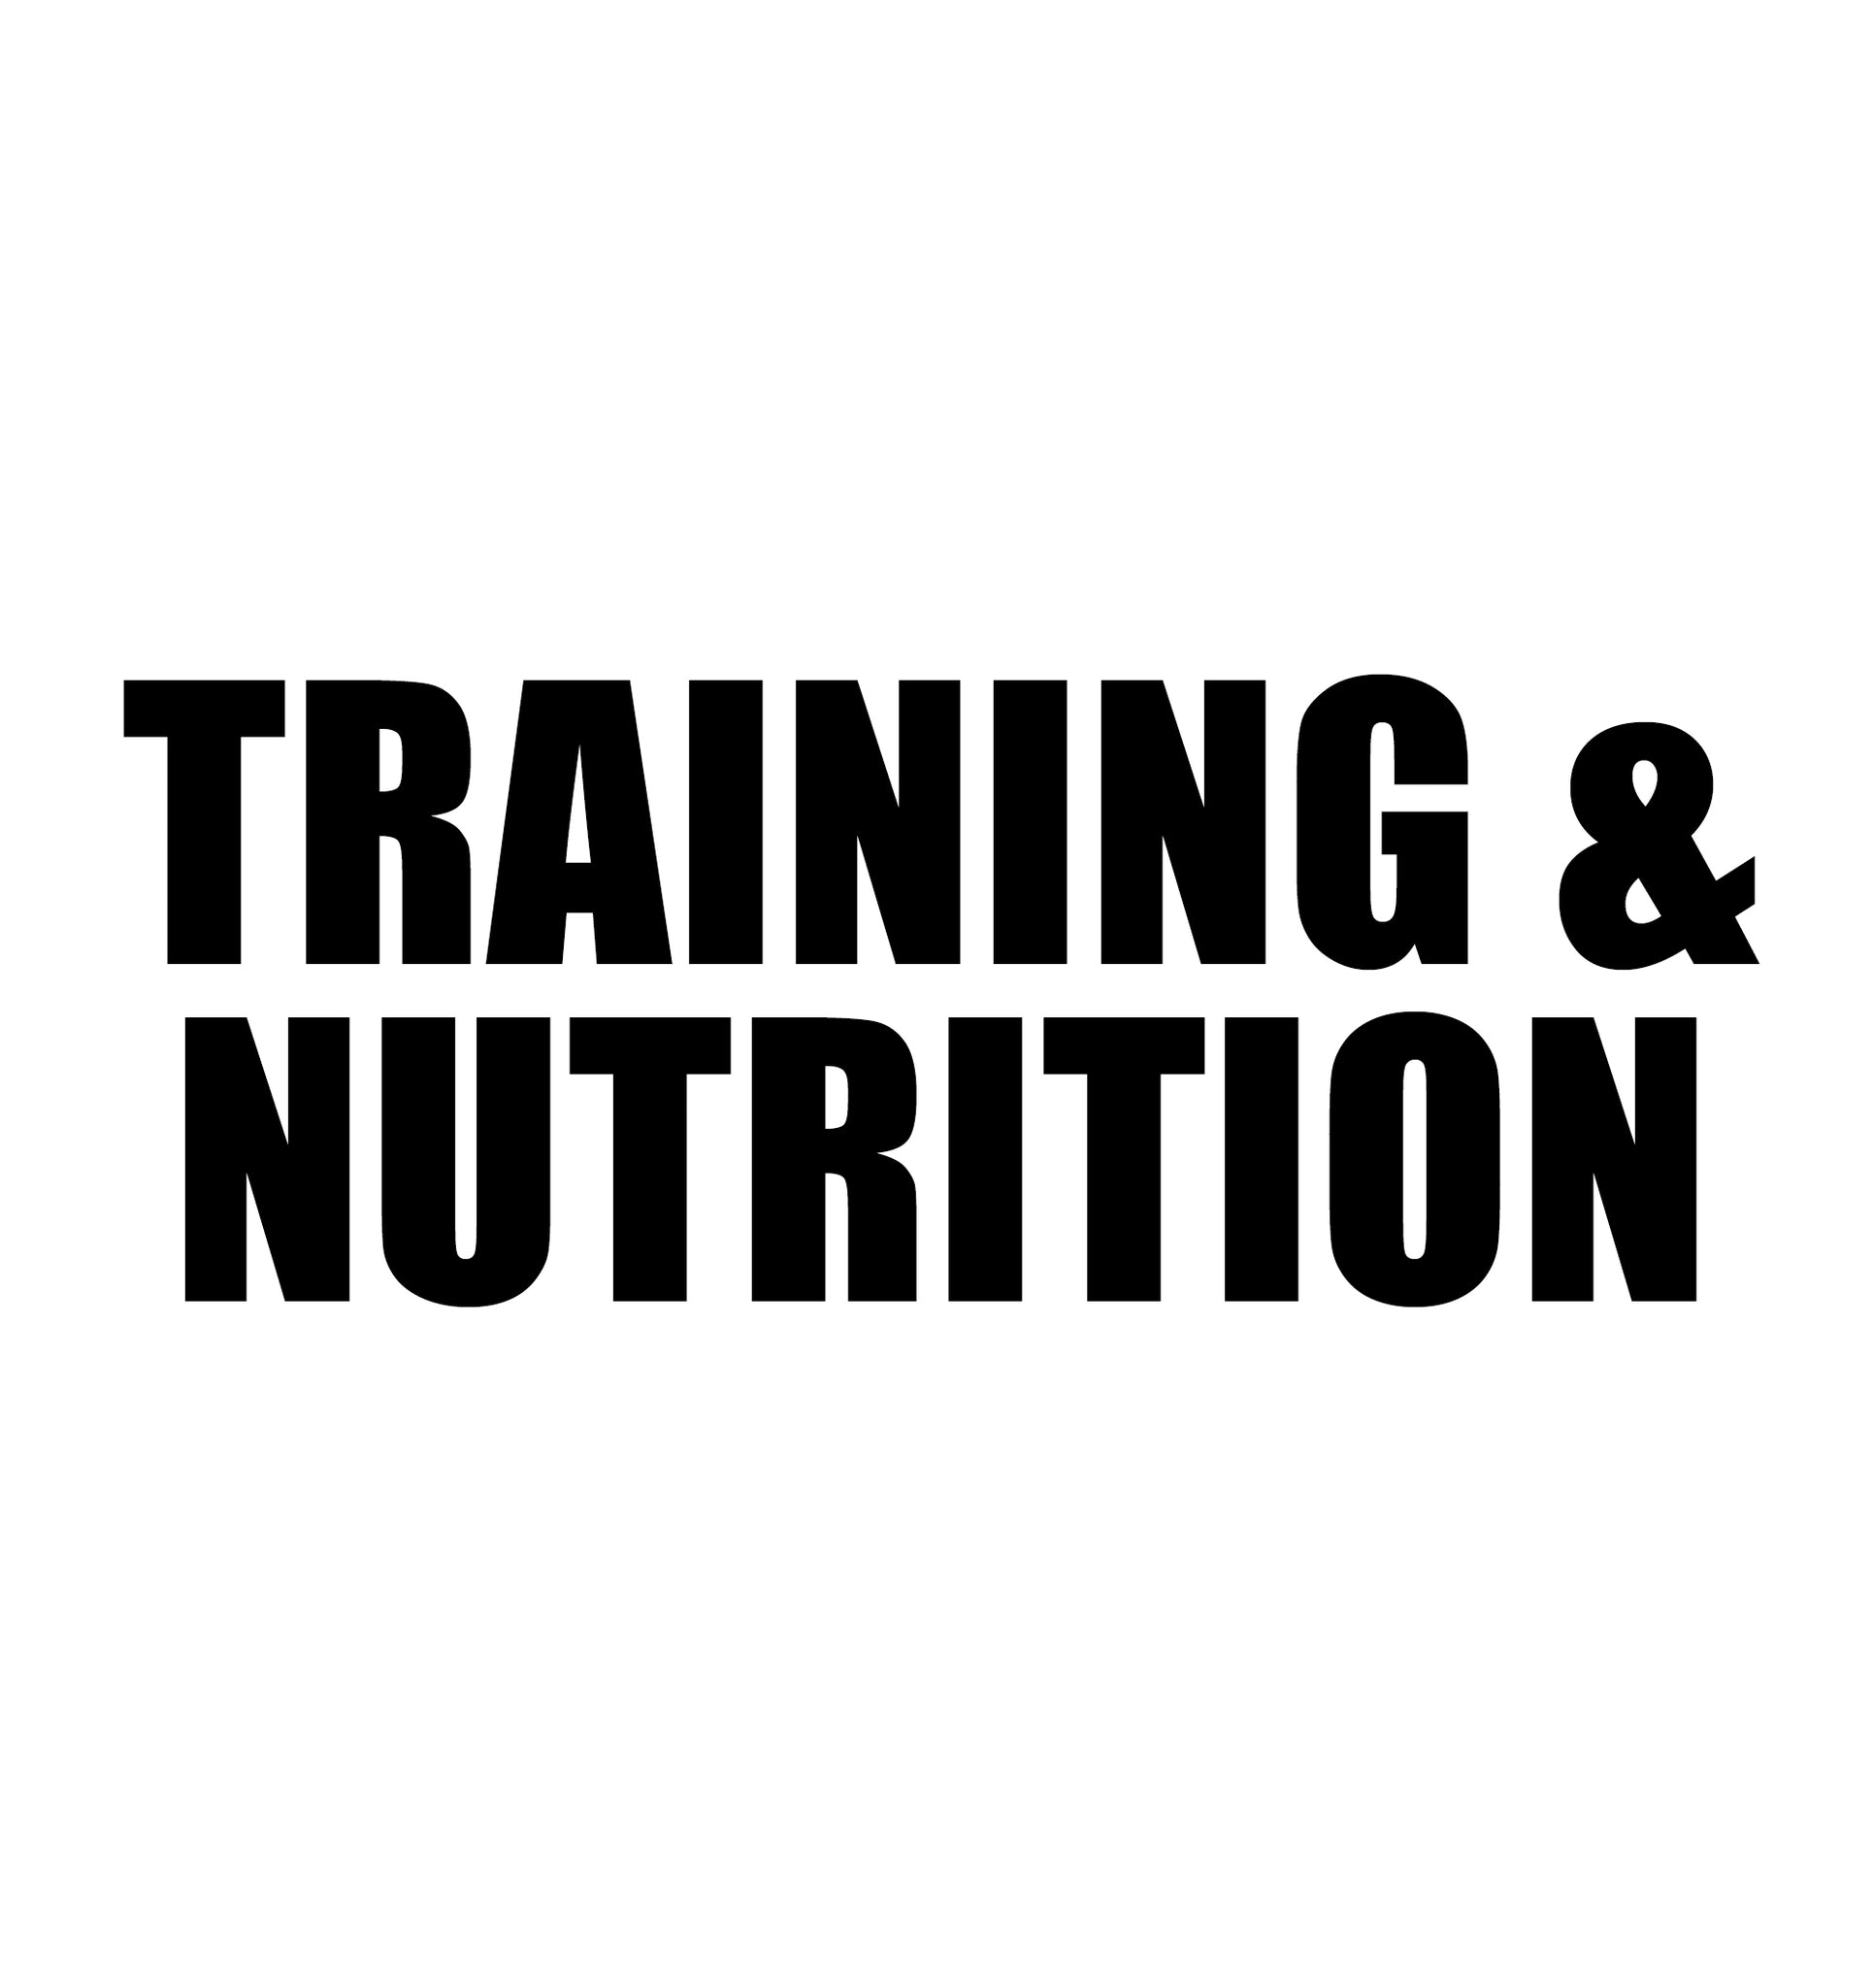 $2800 12 Months Training & Nutrition